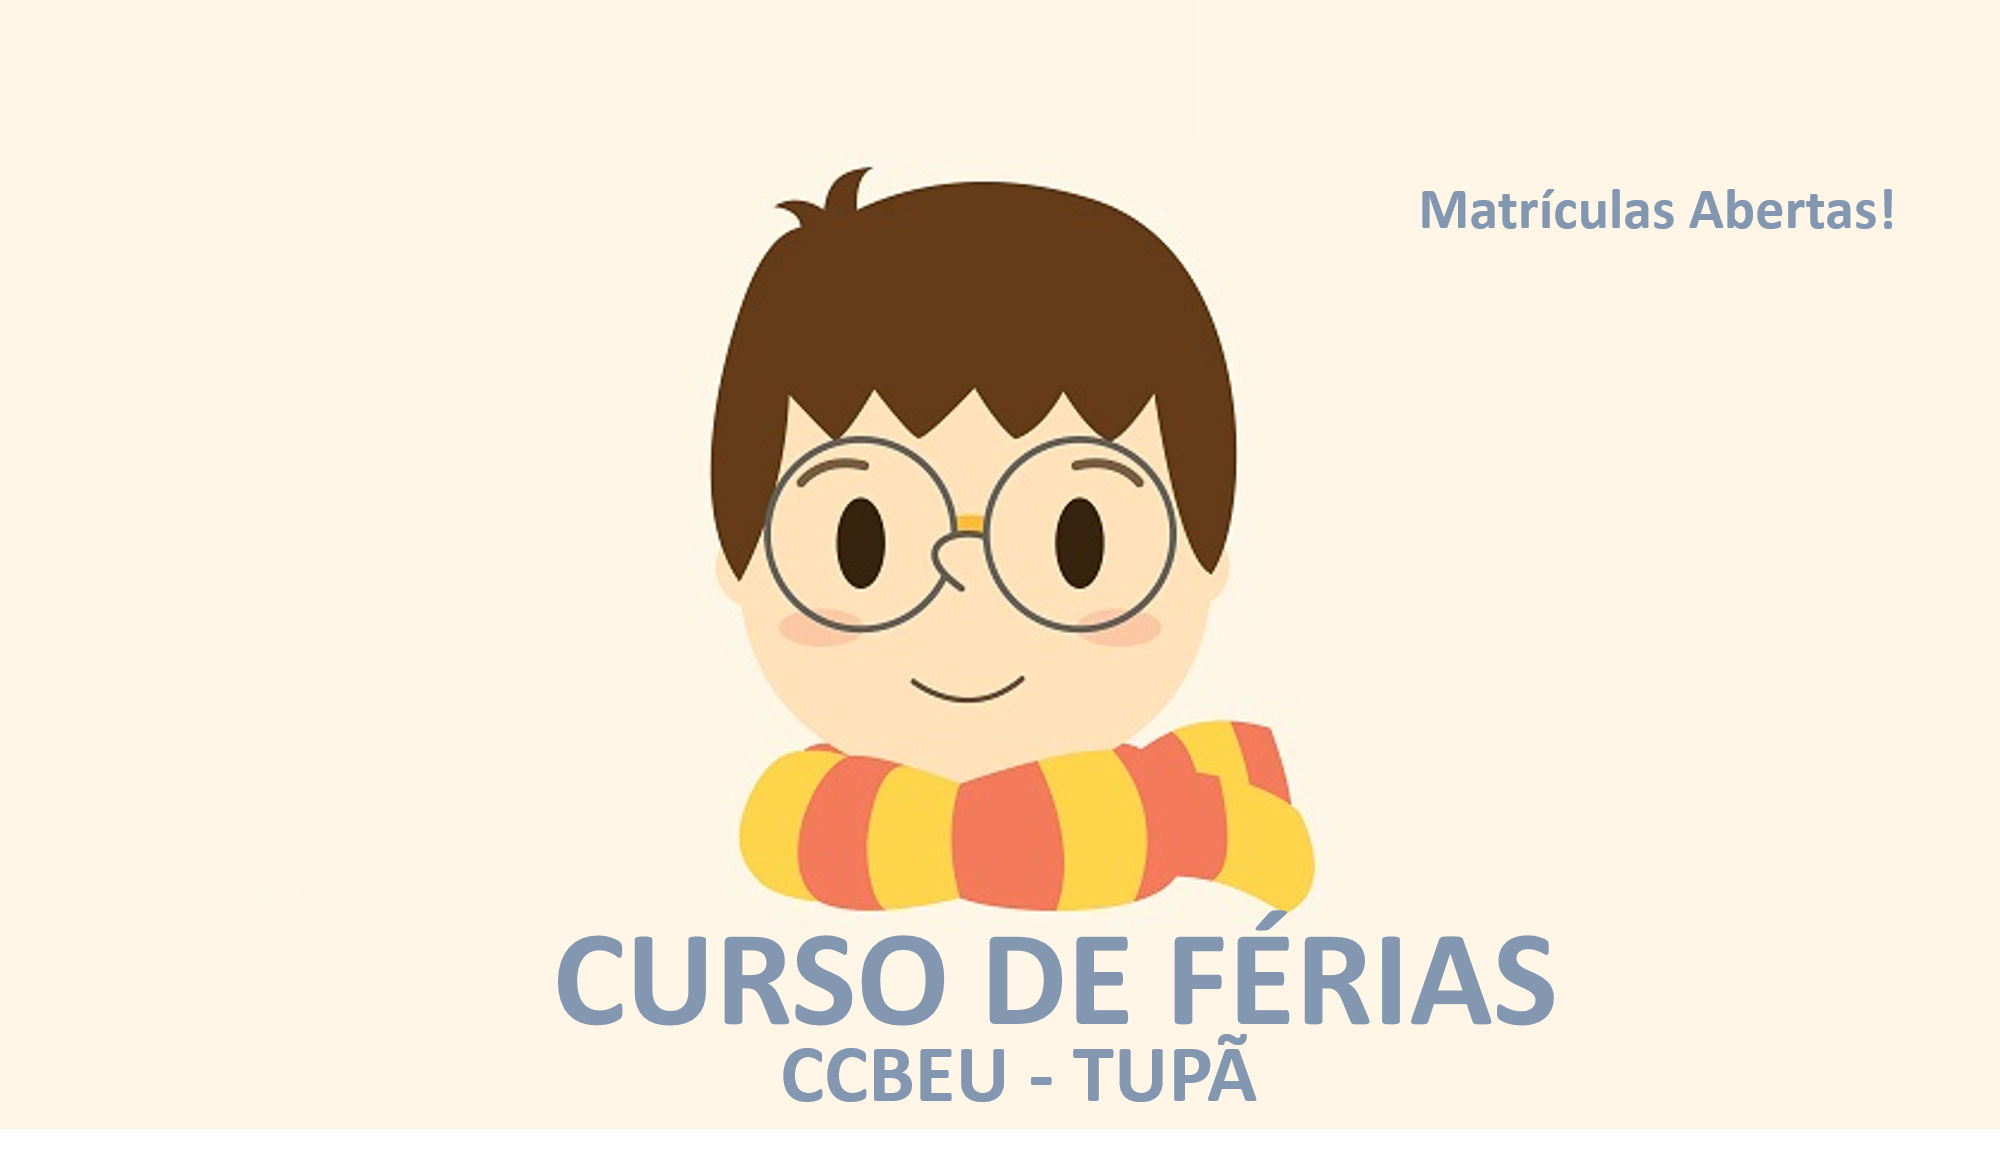 Curso de Férias Tupã: Inventando a varinha do Harry Potter!